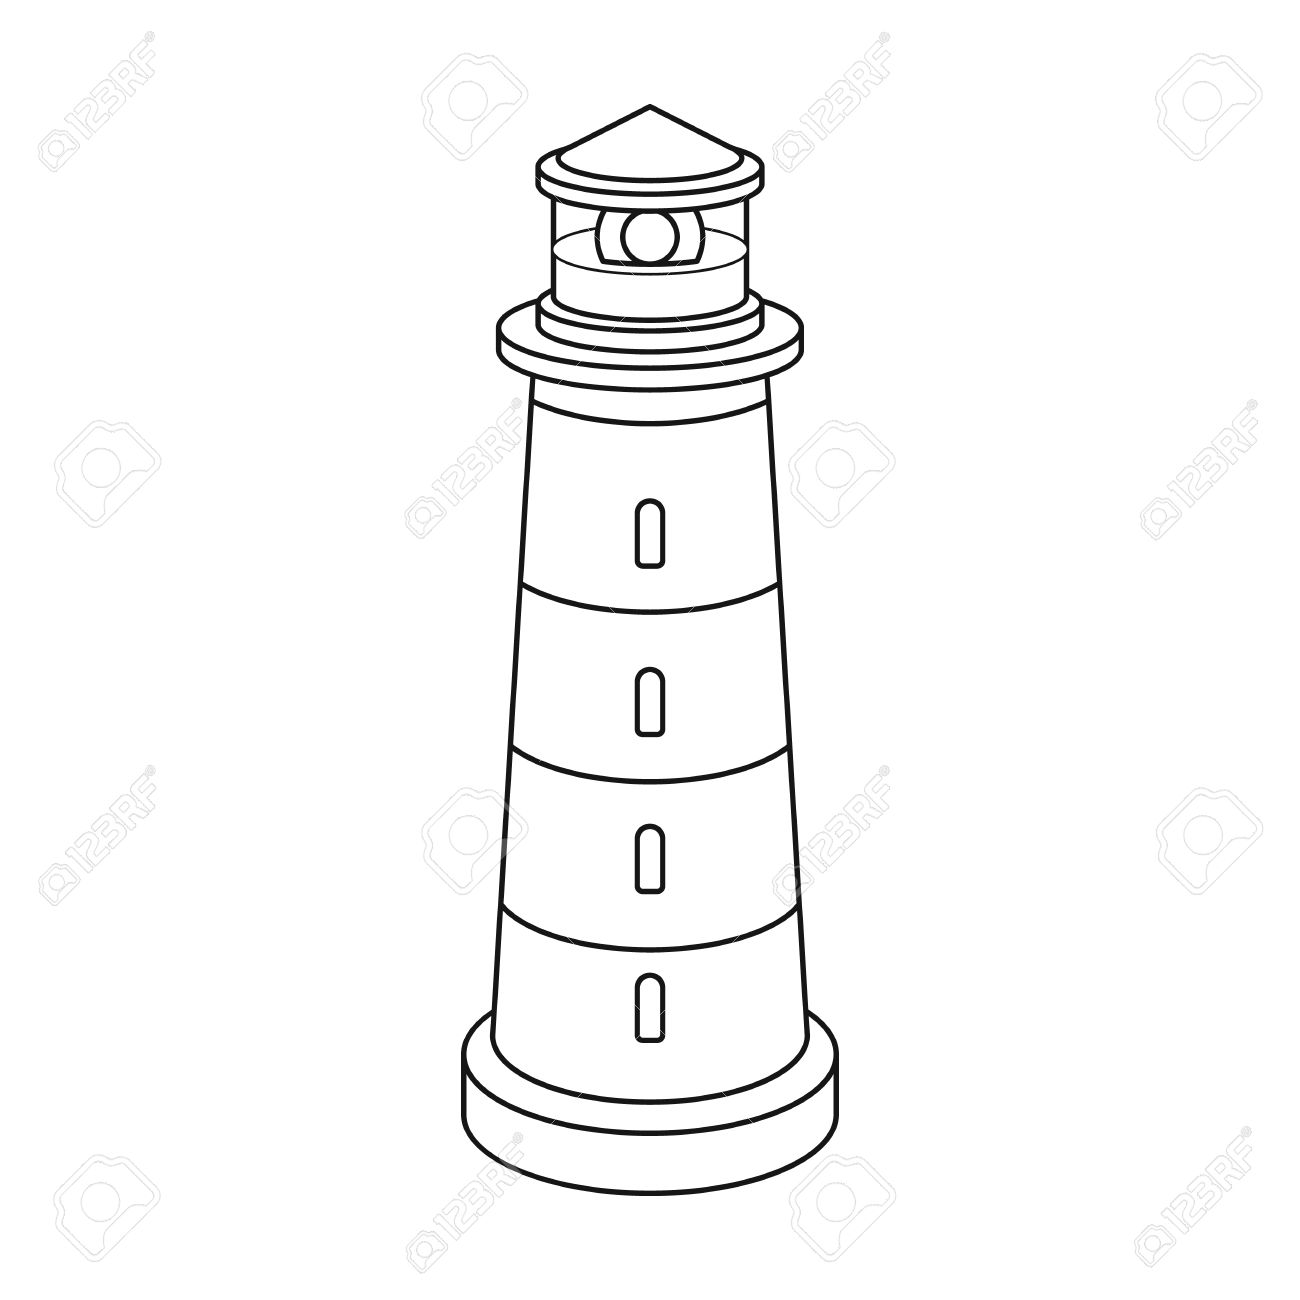 636 Lighthouse free clipart.